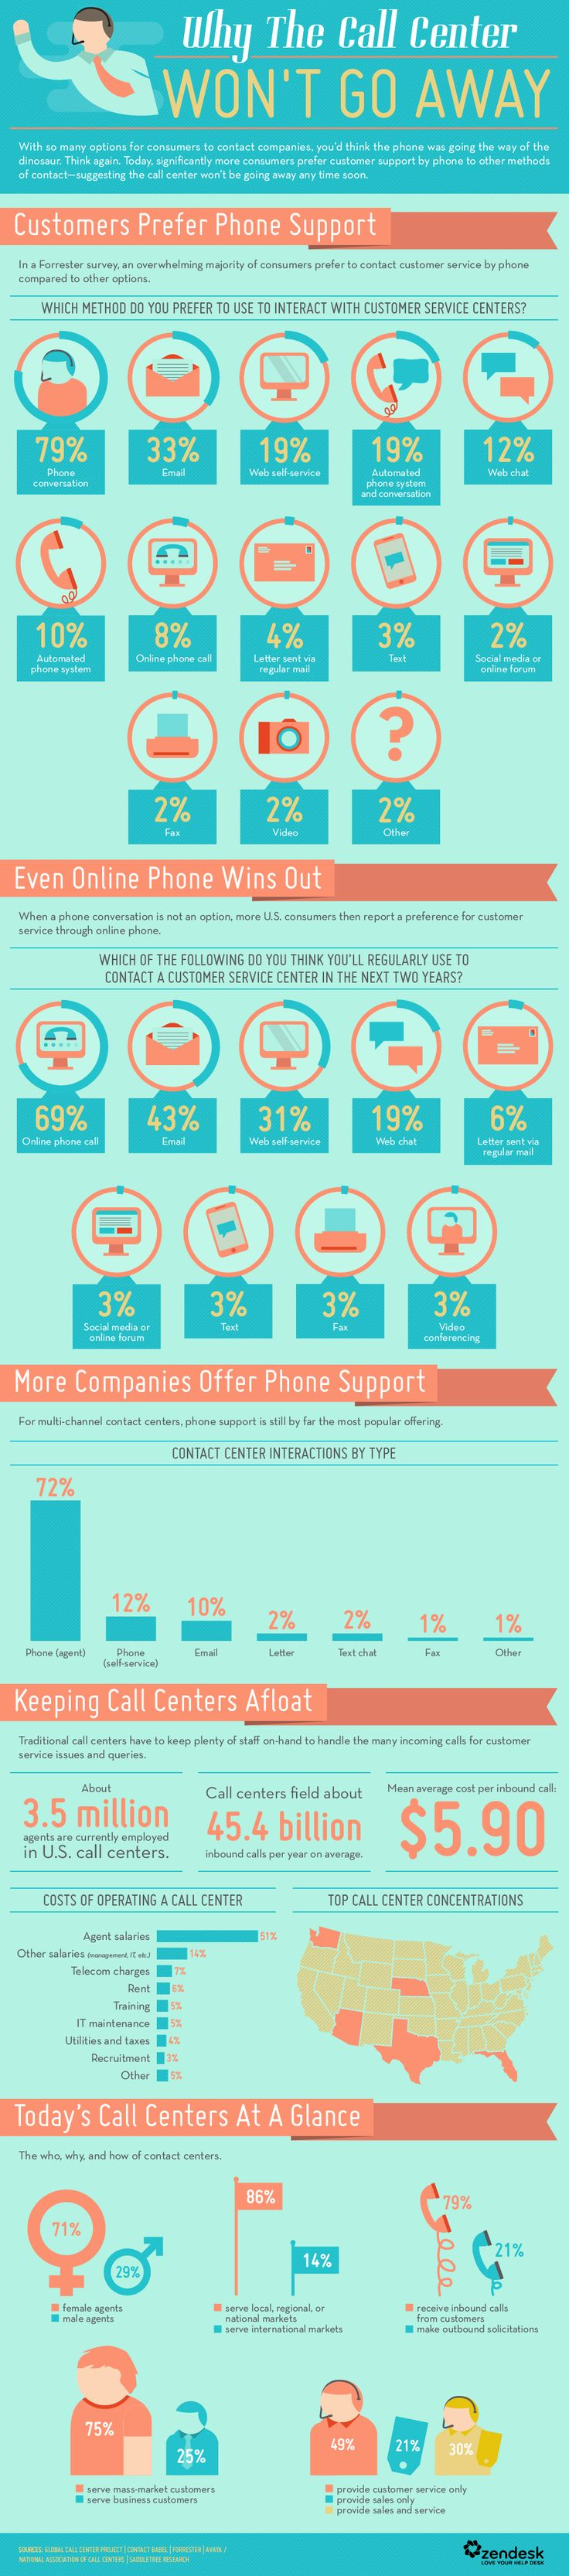 Call Center Infographic - Phone support continues to be the most popular support channel.